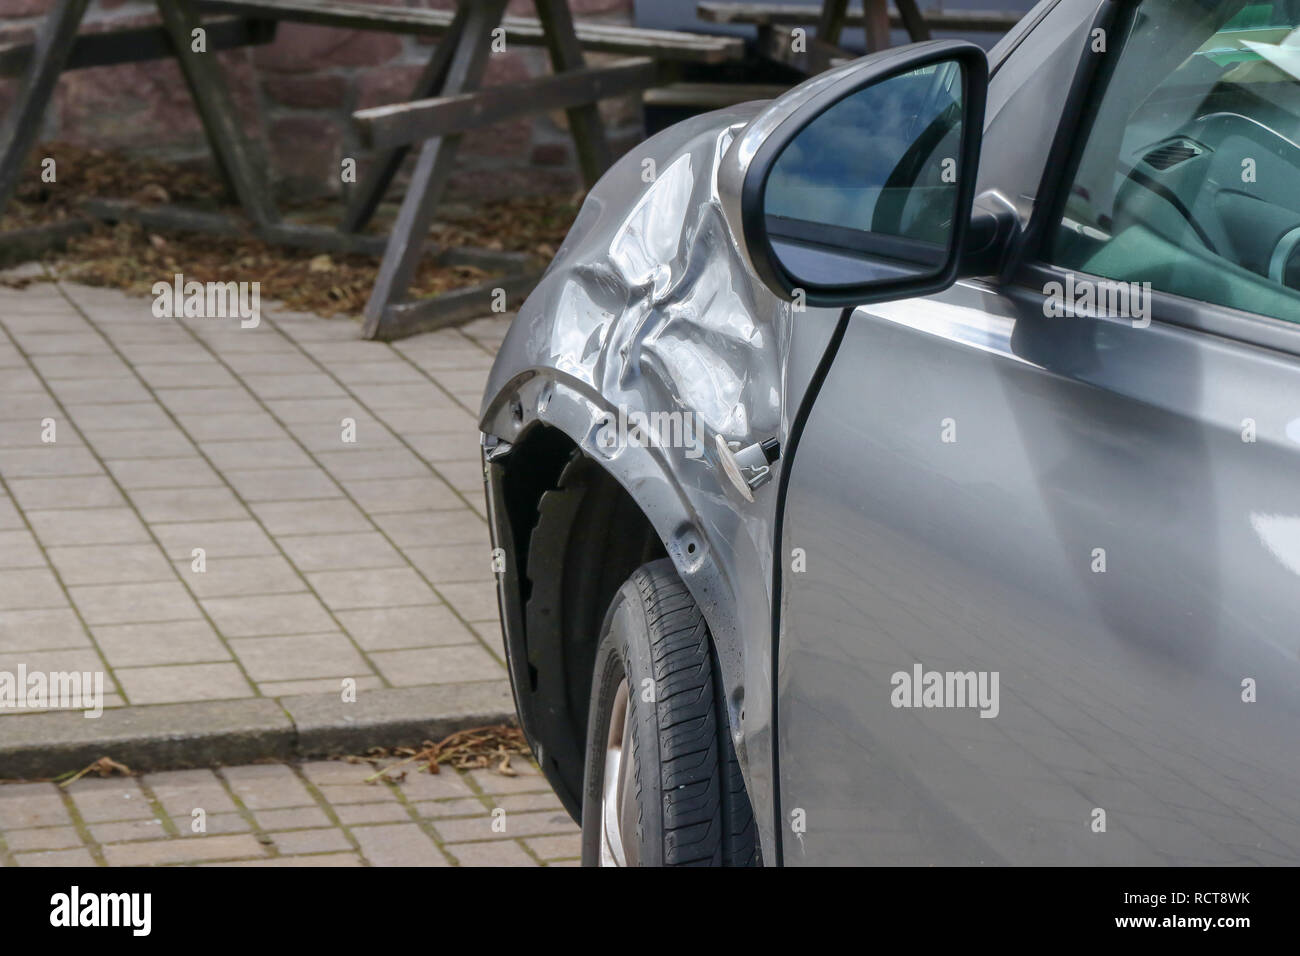 Damaged car - parked grey car with damaged panel on front near-side wing - Stock Image